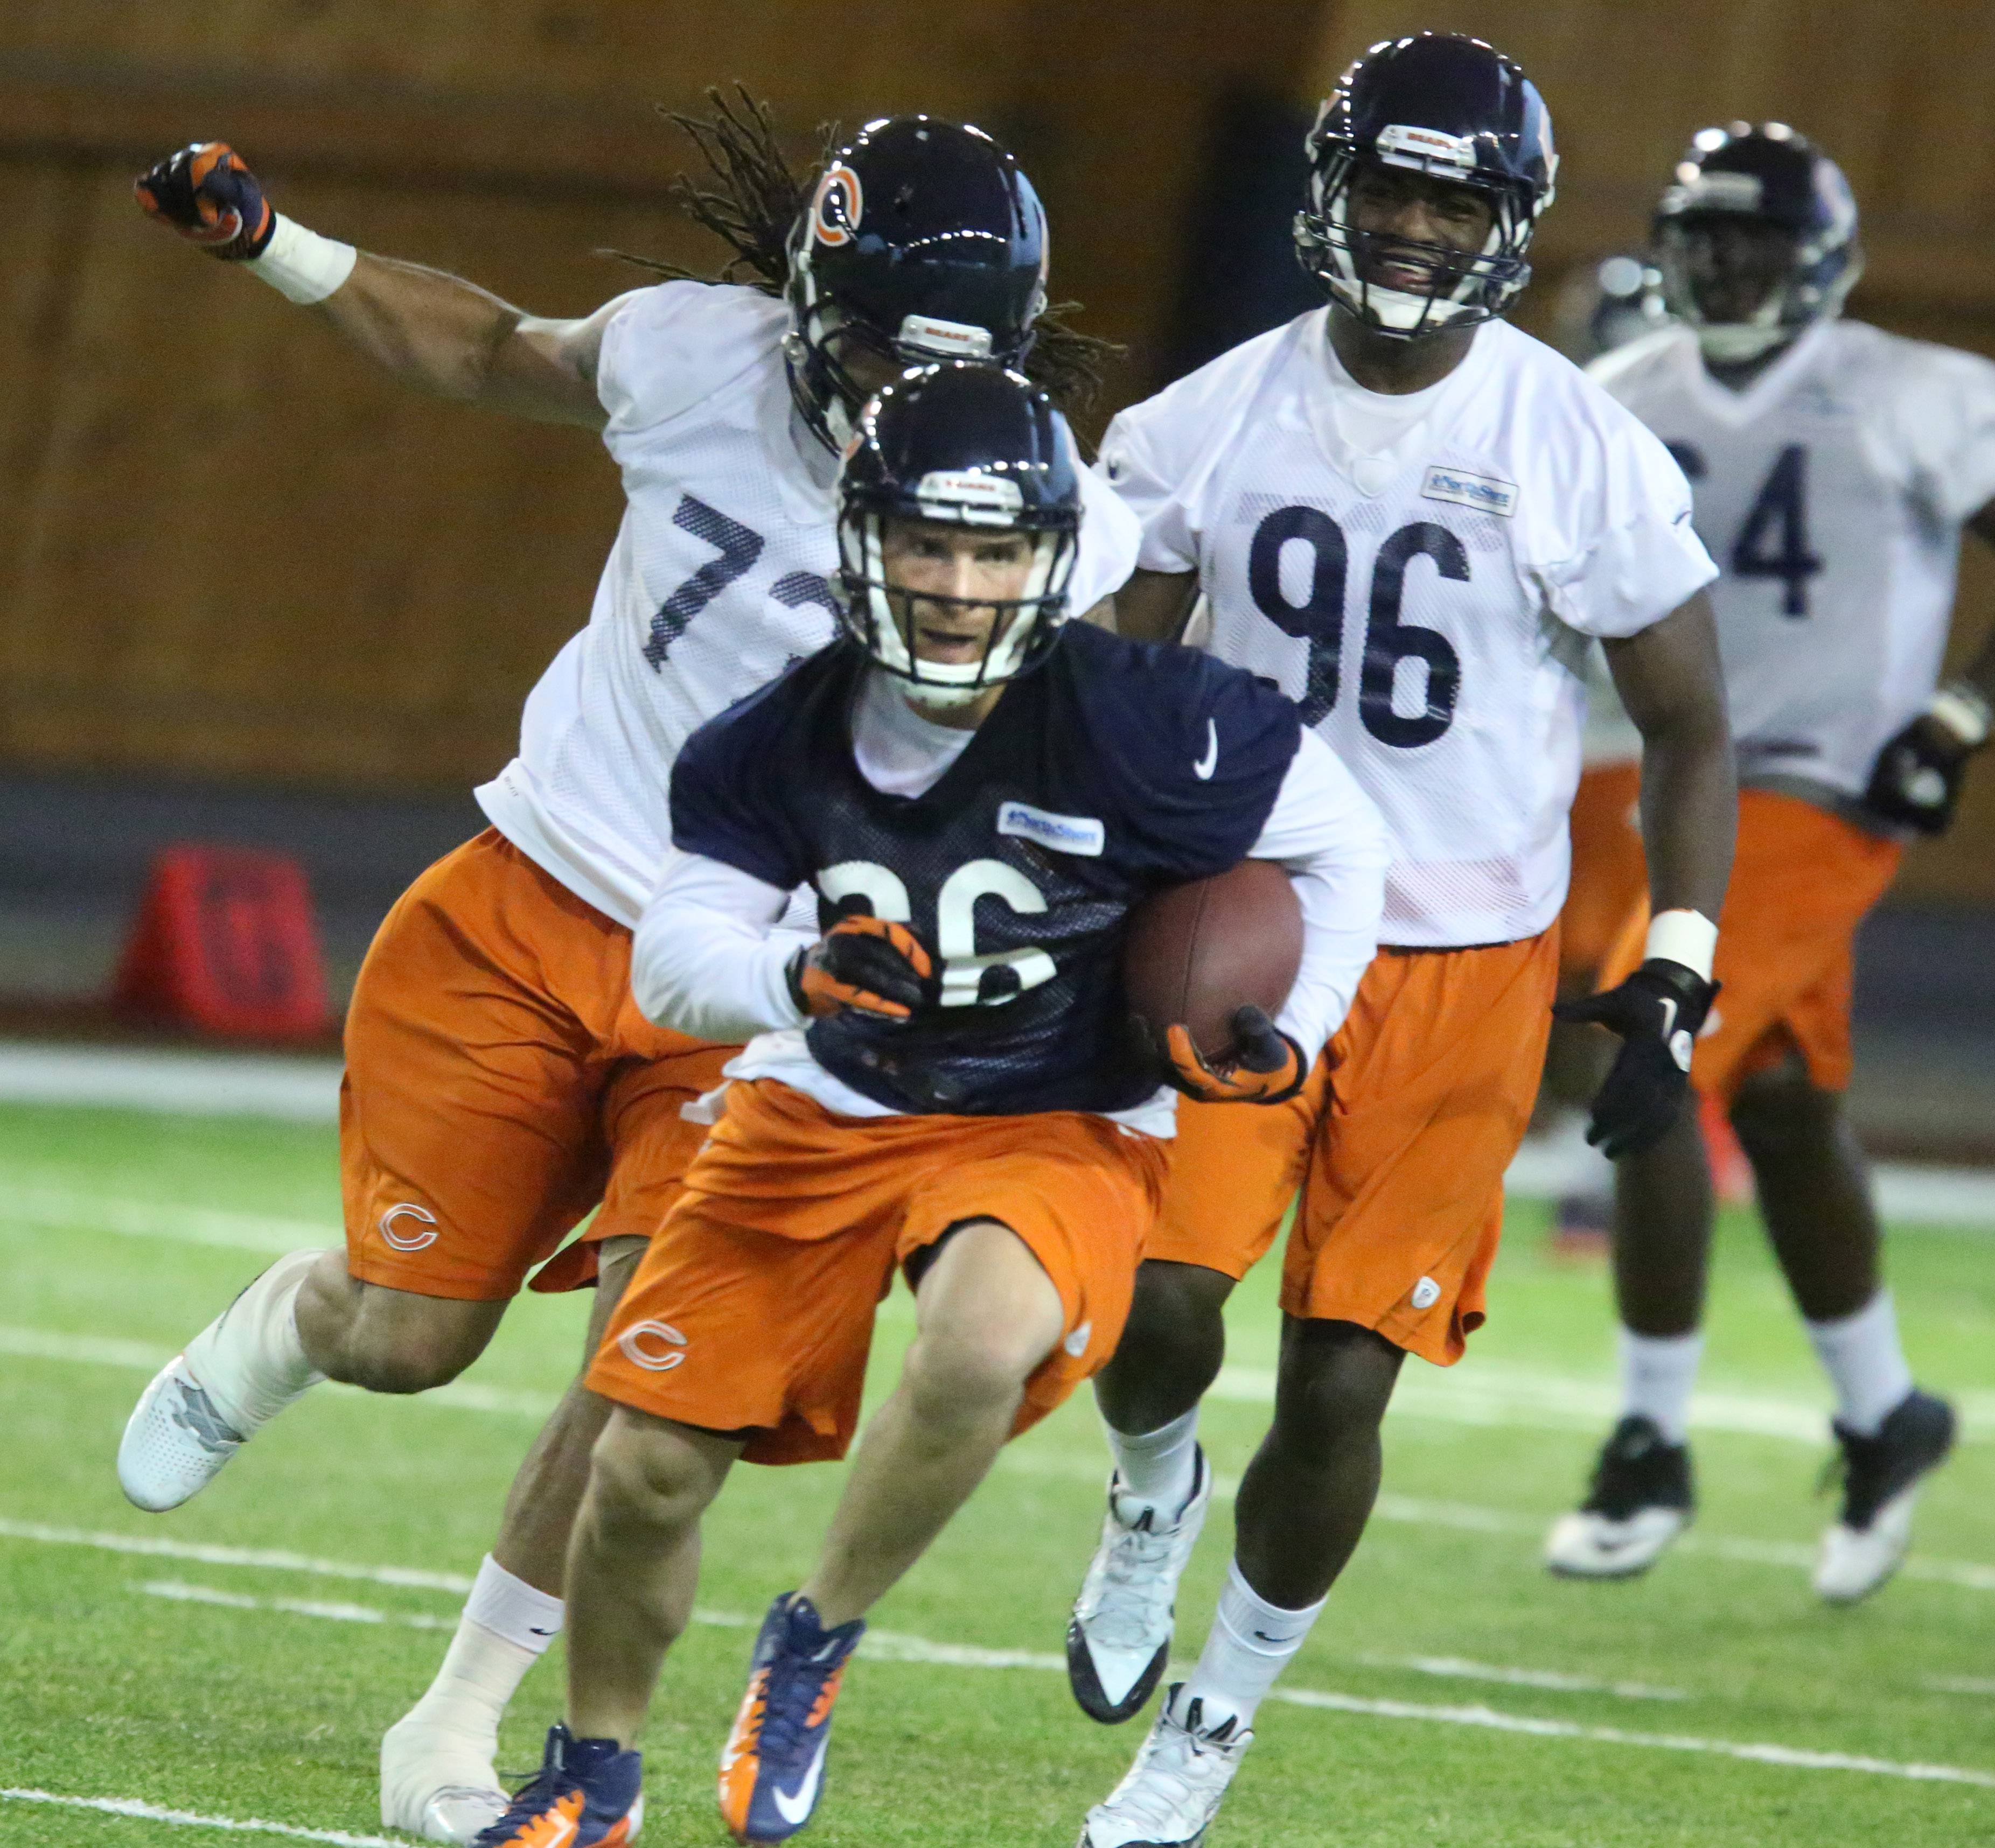 Bears' Lynch out to make most of final opportunity